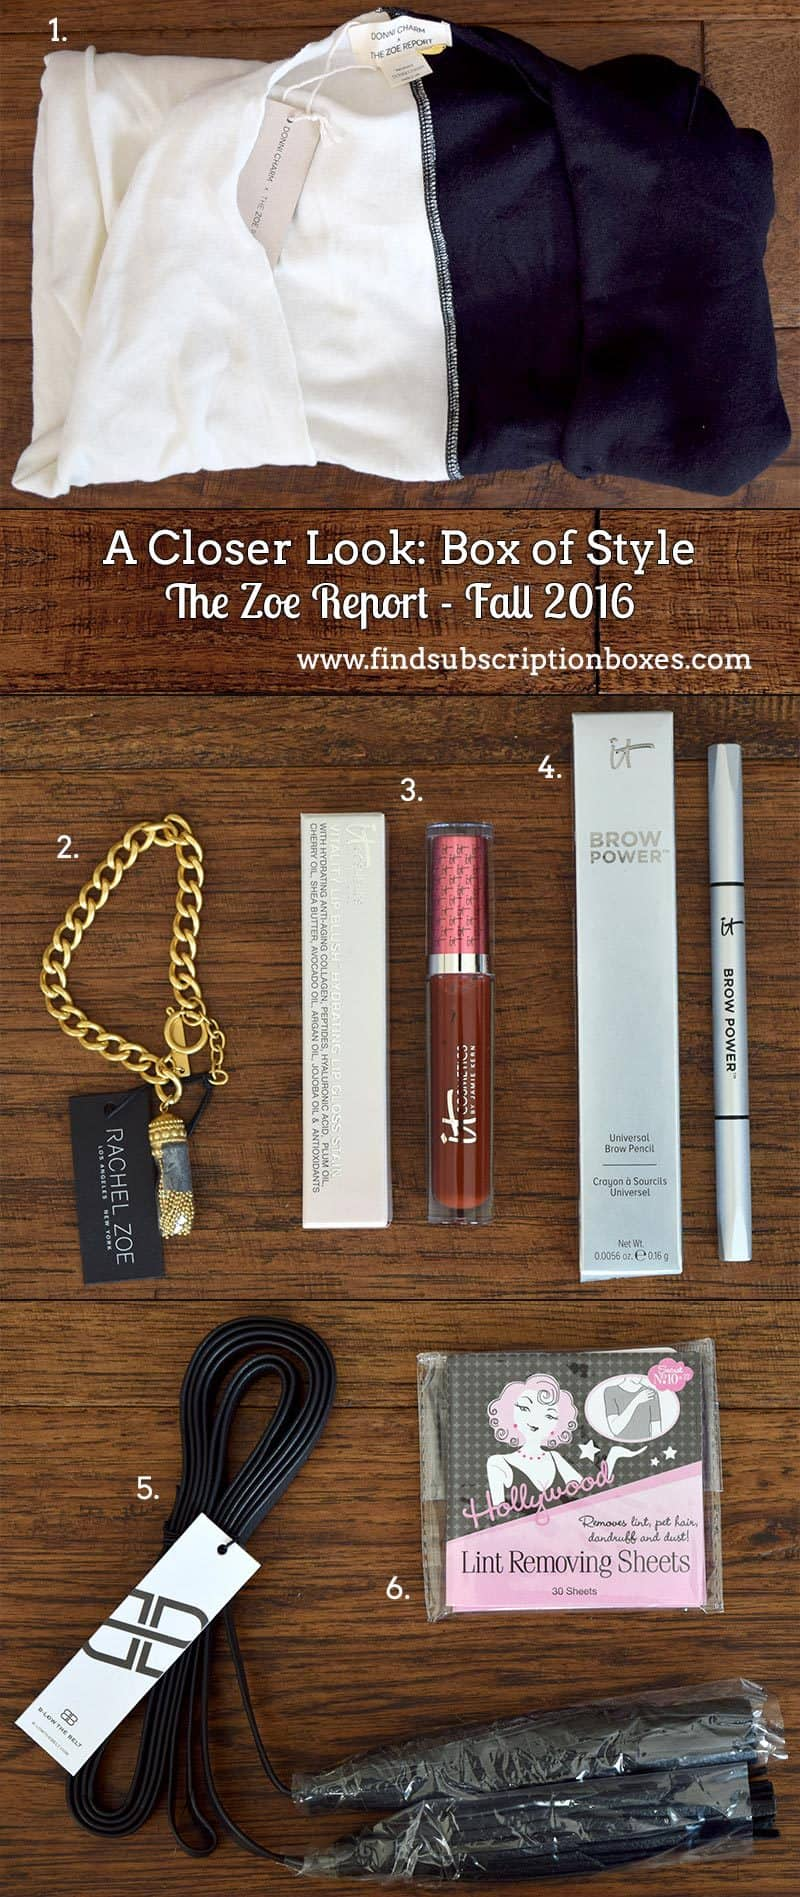 Rachel Zoe Fall 2016 Box of Style Review - Inside the Box